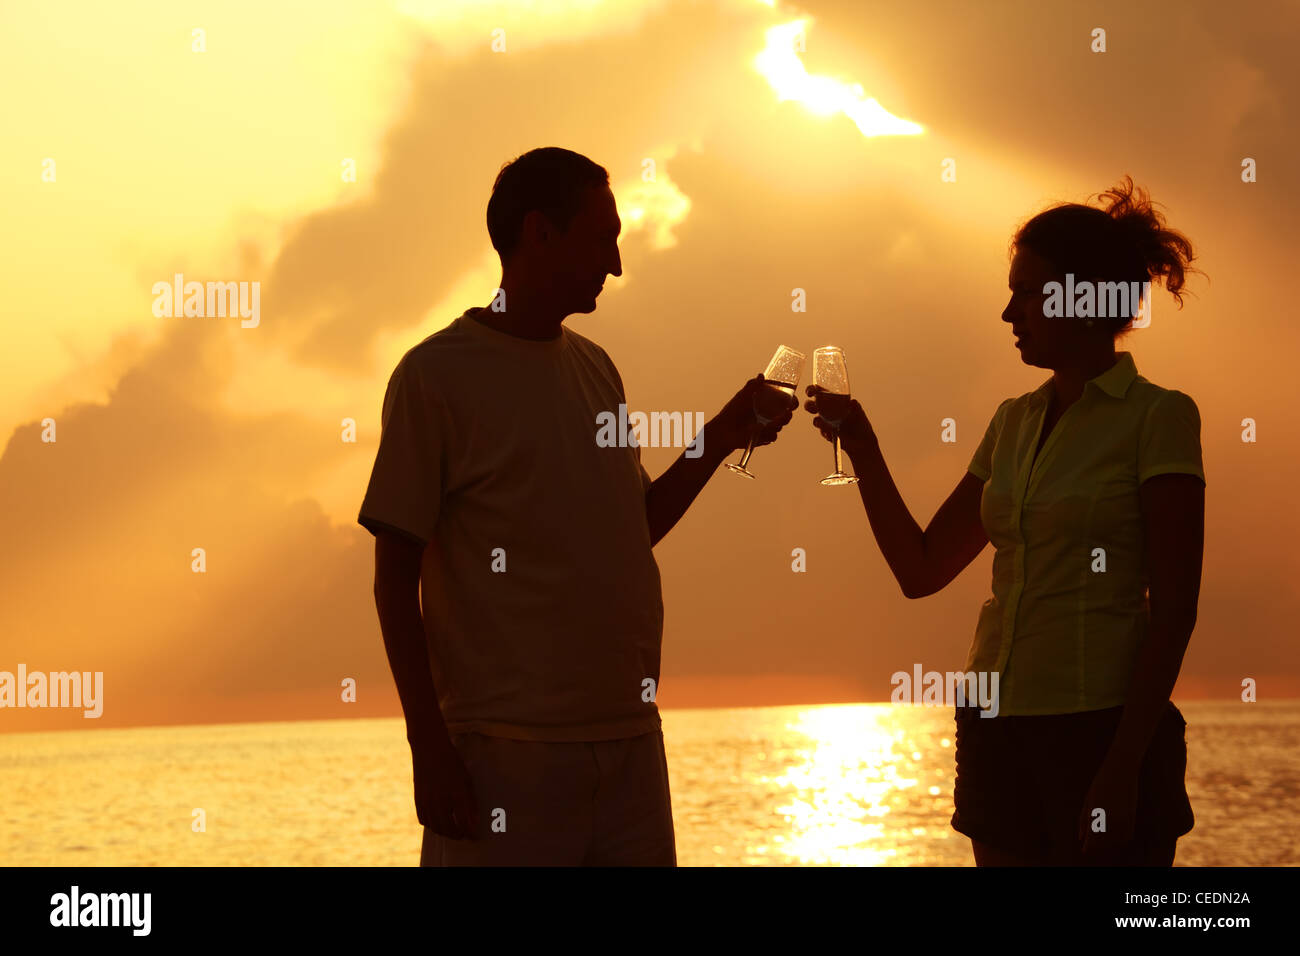 Man and woman clink glasses. Silhouettes against sea. - Stock Image